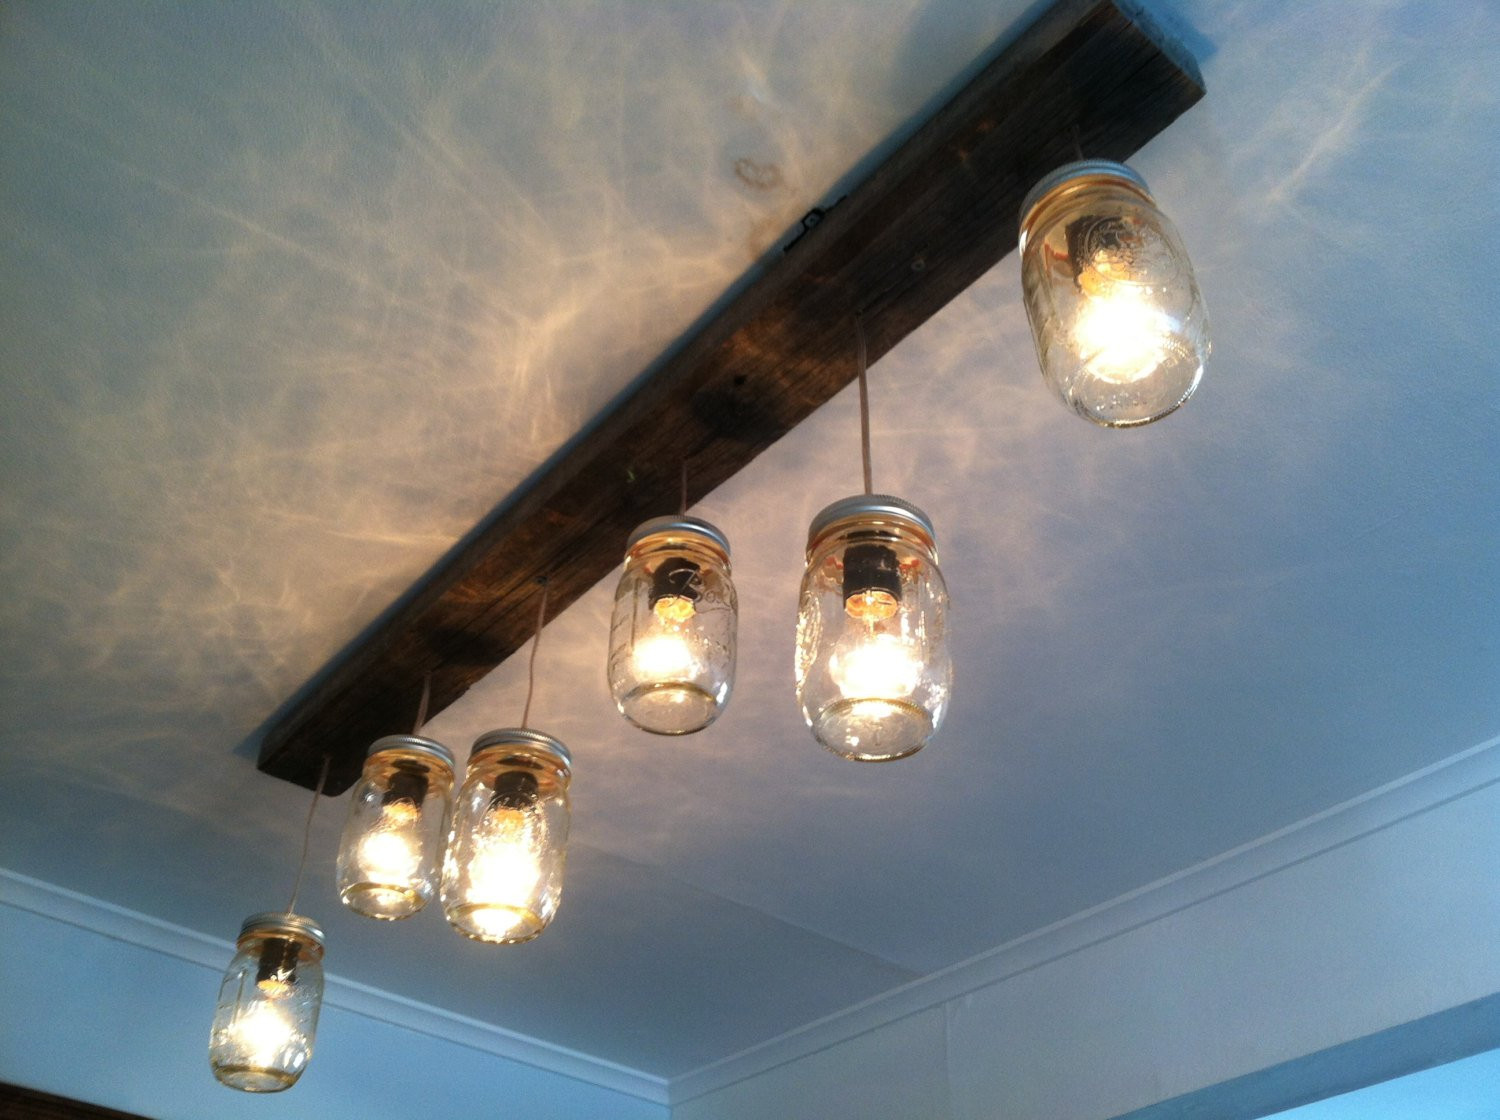 Best ideas about DIY Track Lighting . Save or Pin Mason Jar and Wood Track Lighting by LengaresDesign on Etsy Now.